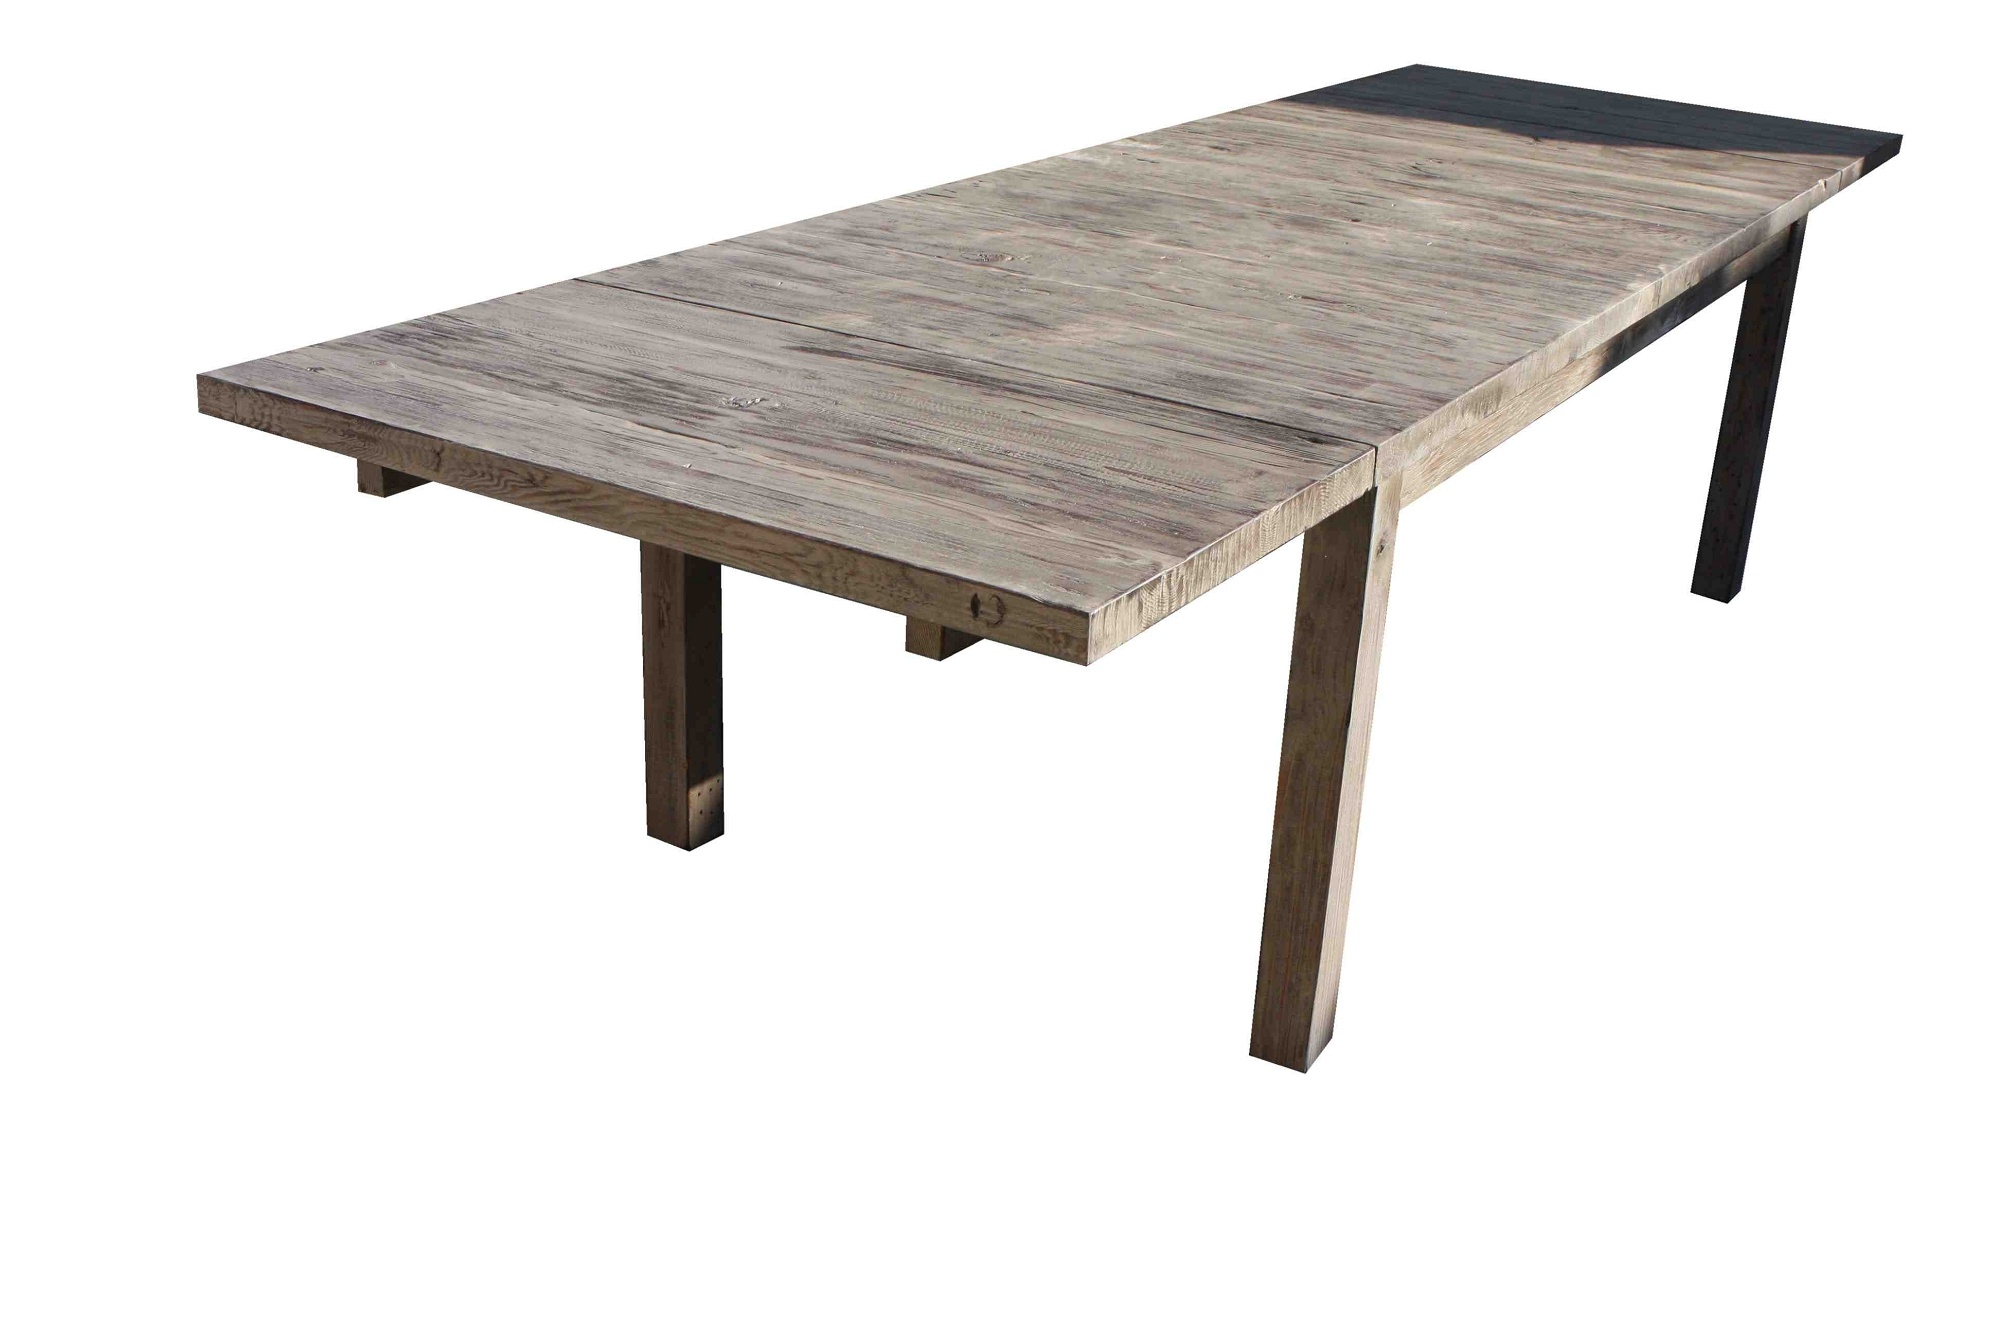 Vintage Counter Height Dining Table - Dining Table Design regarding Most Popular Benchwright Bar Height Dining Tables